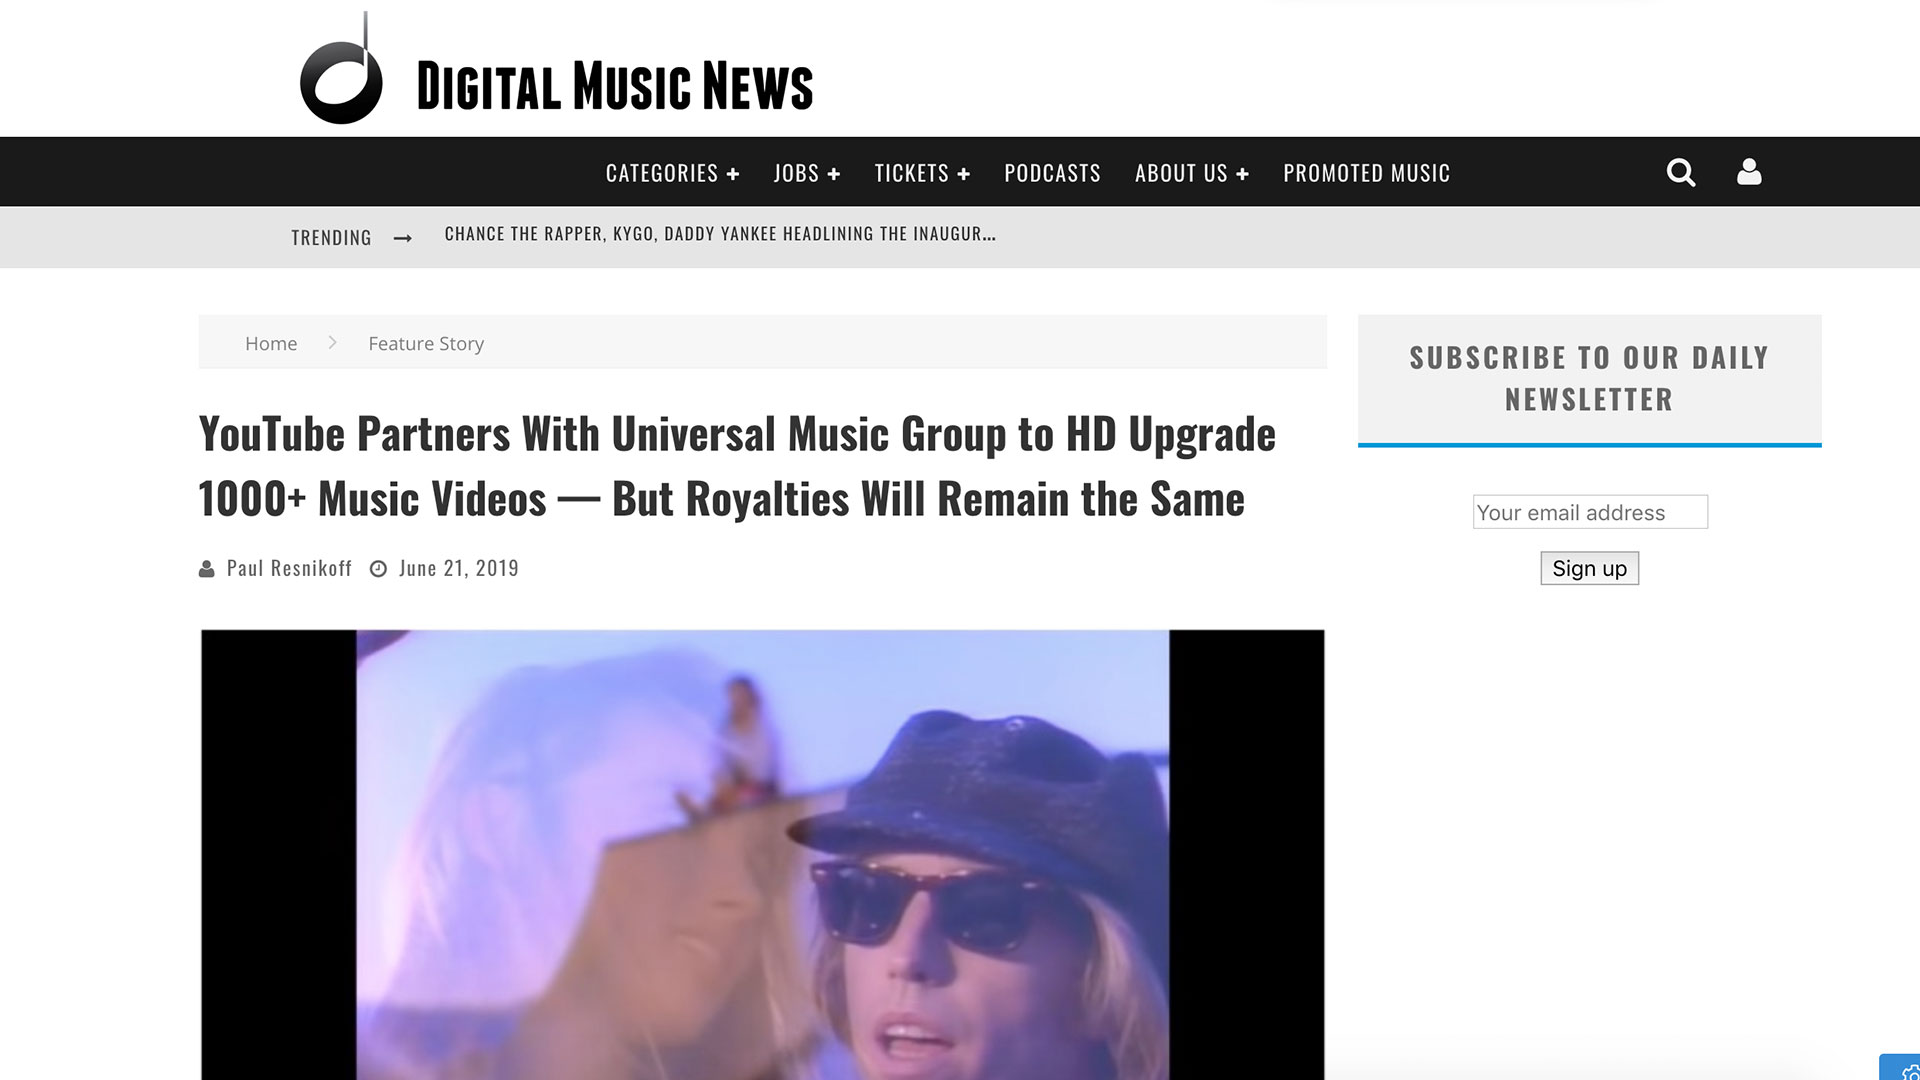 Fairness Rocks News YouTube Partners With Universal Music Group to HD Upgrade 1000+ Music Videos — But Royalties Will Remain the Same